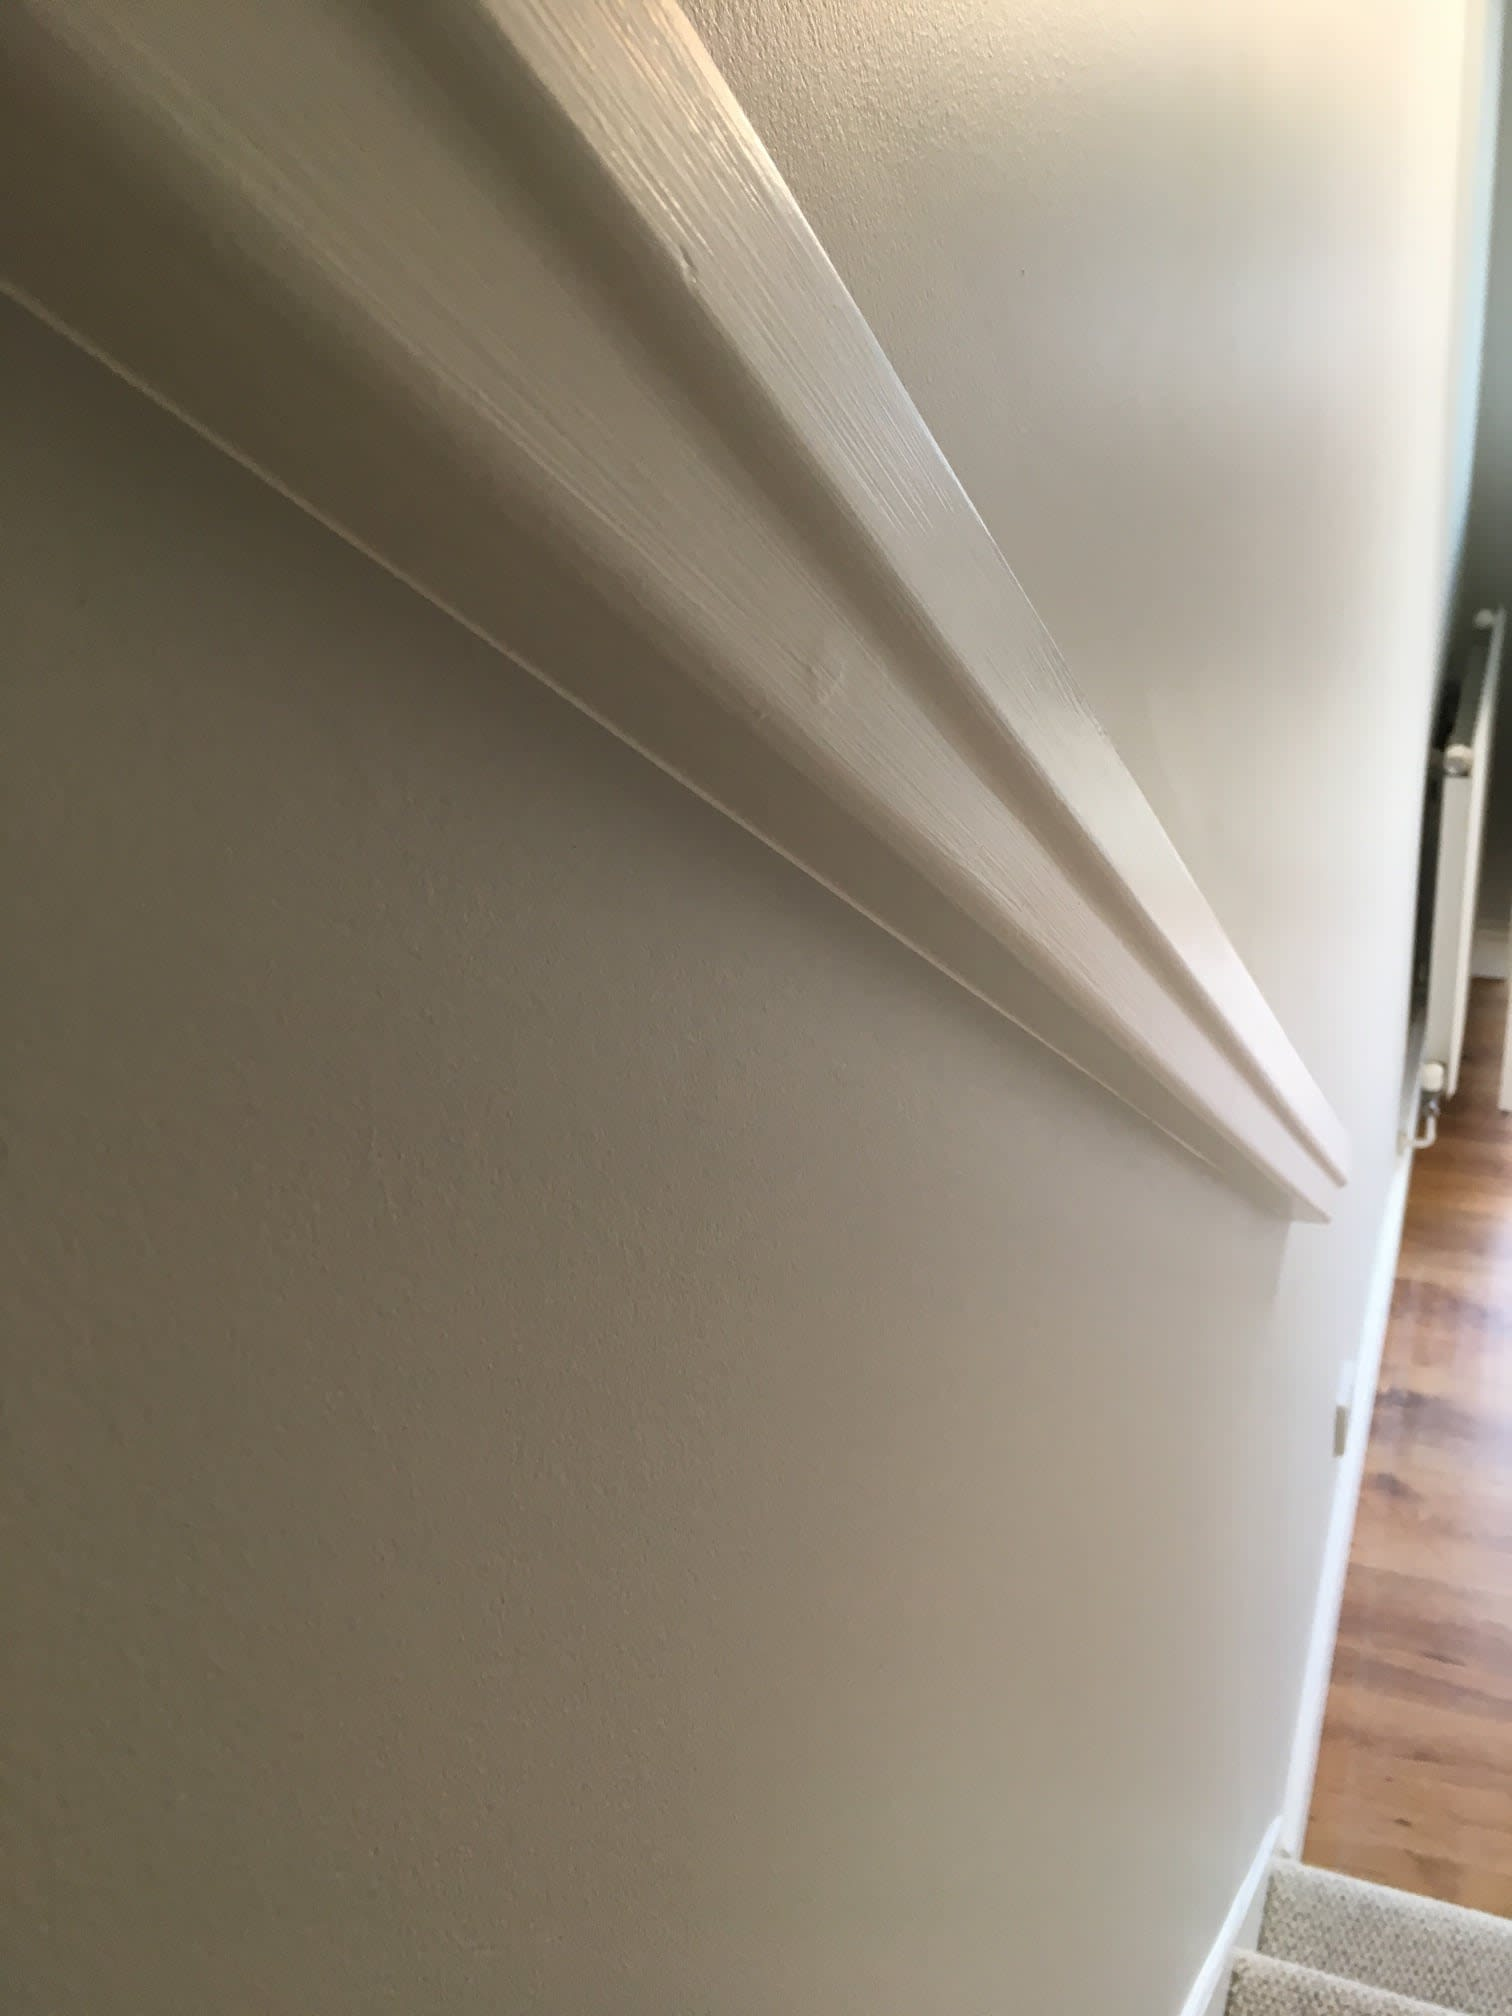 Cherry Professional Painting & Decorating